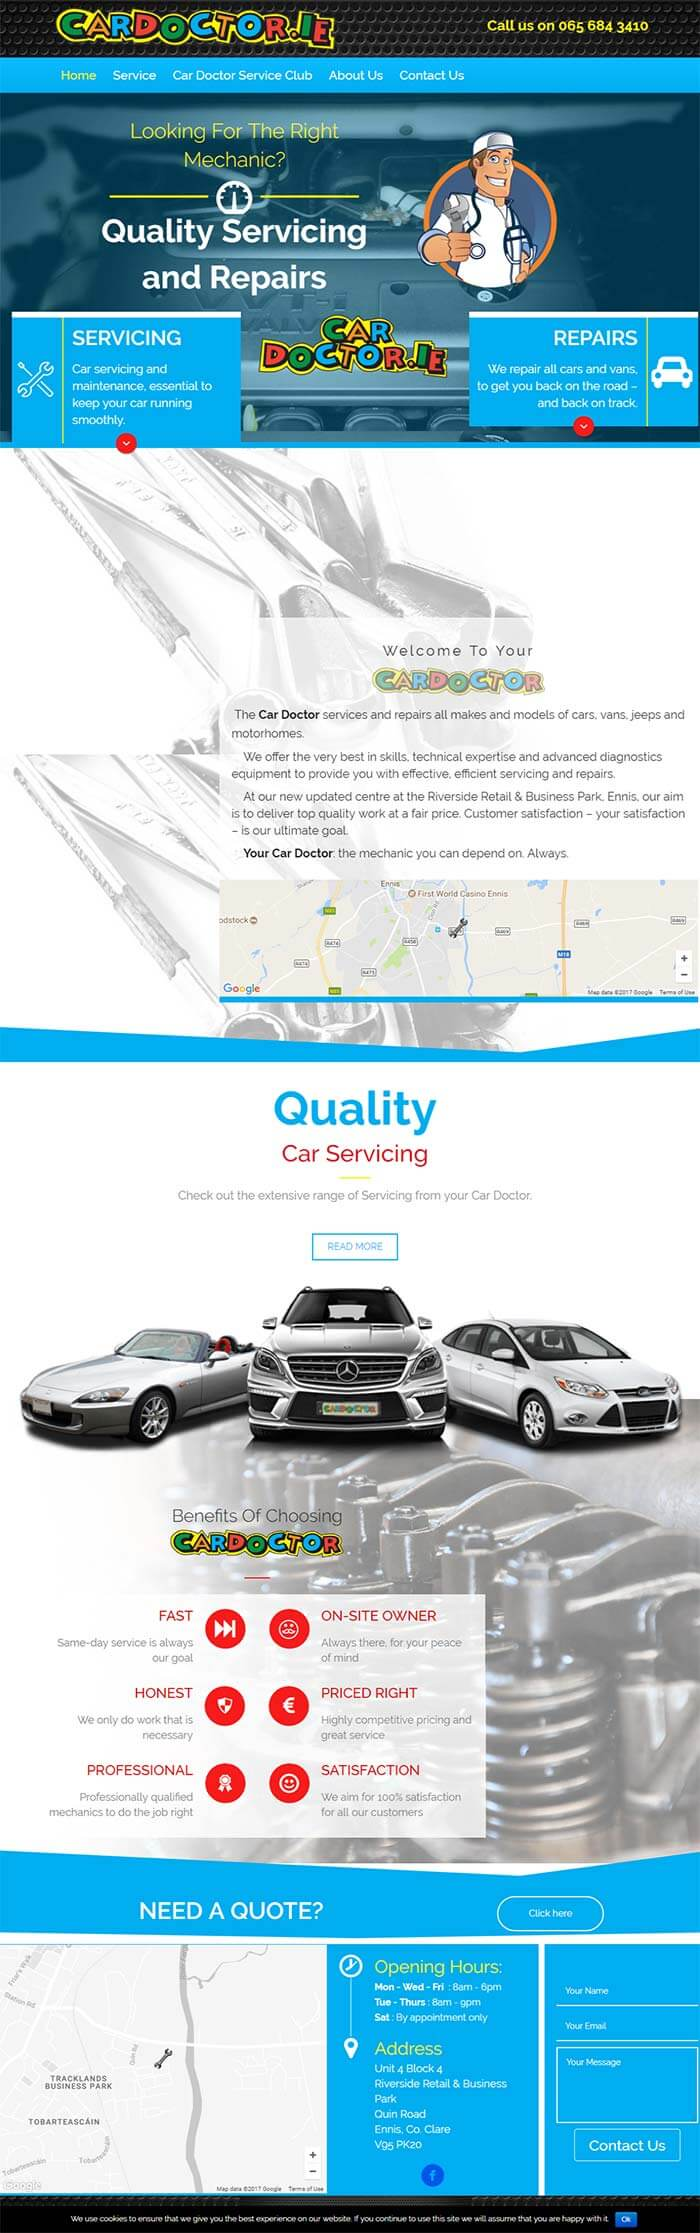 The Car Doctor Website screenshot of home page